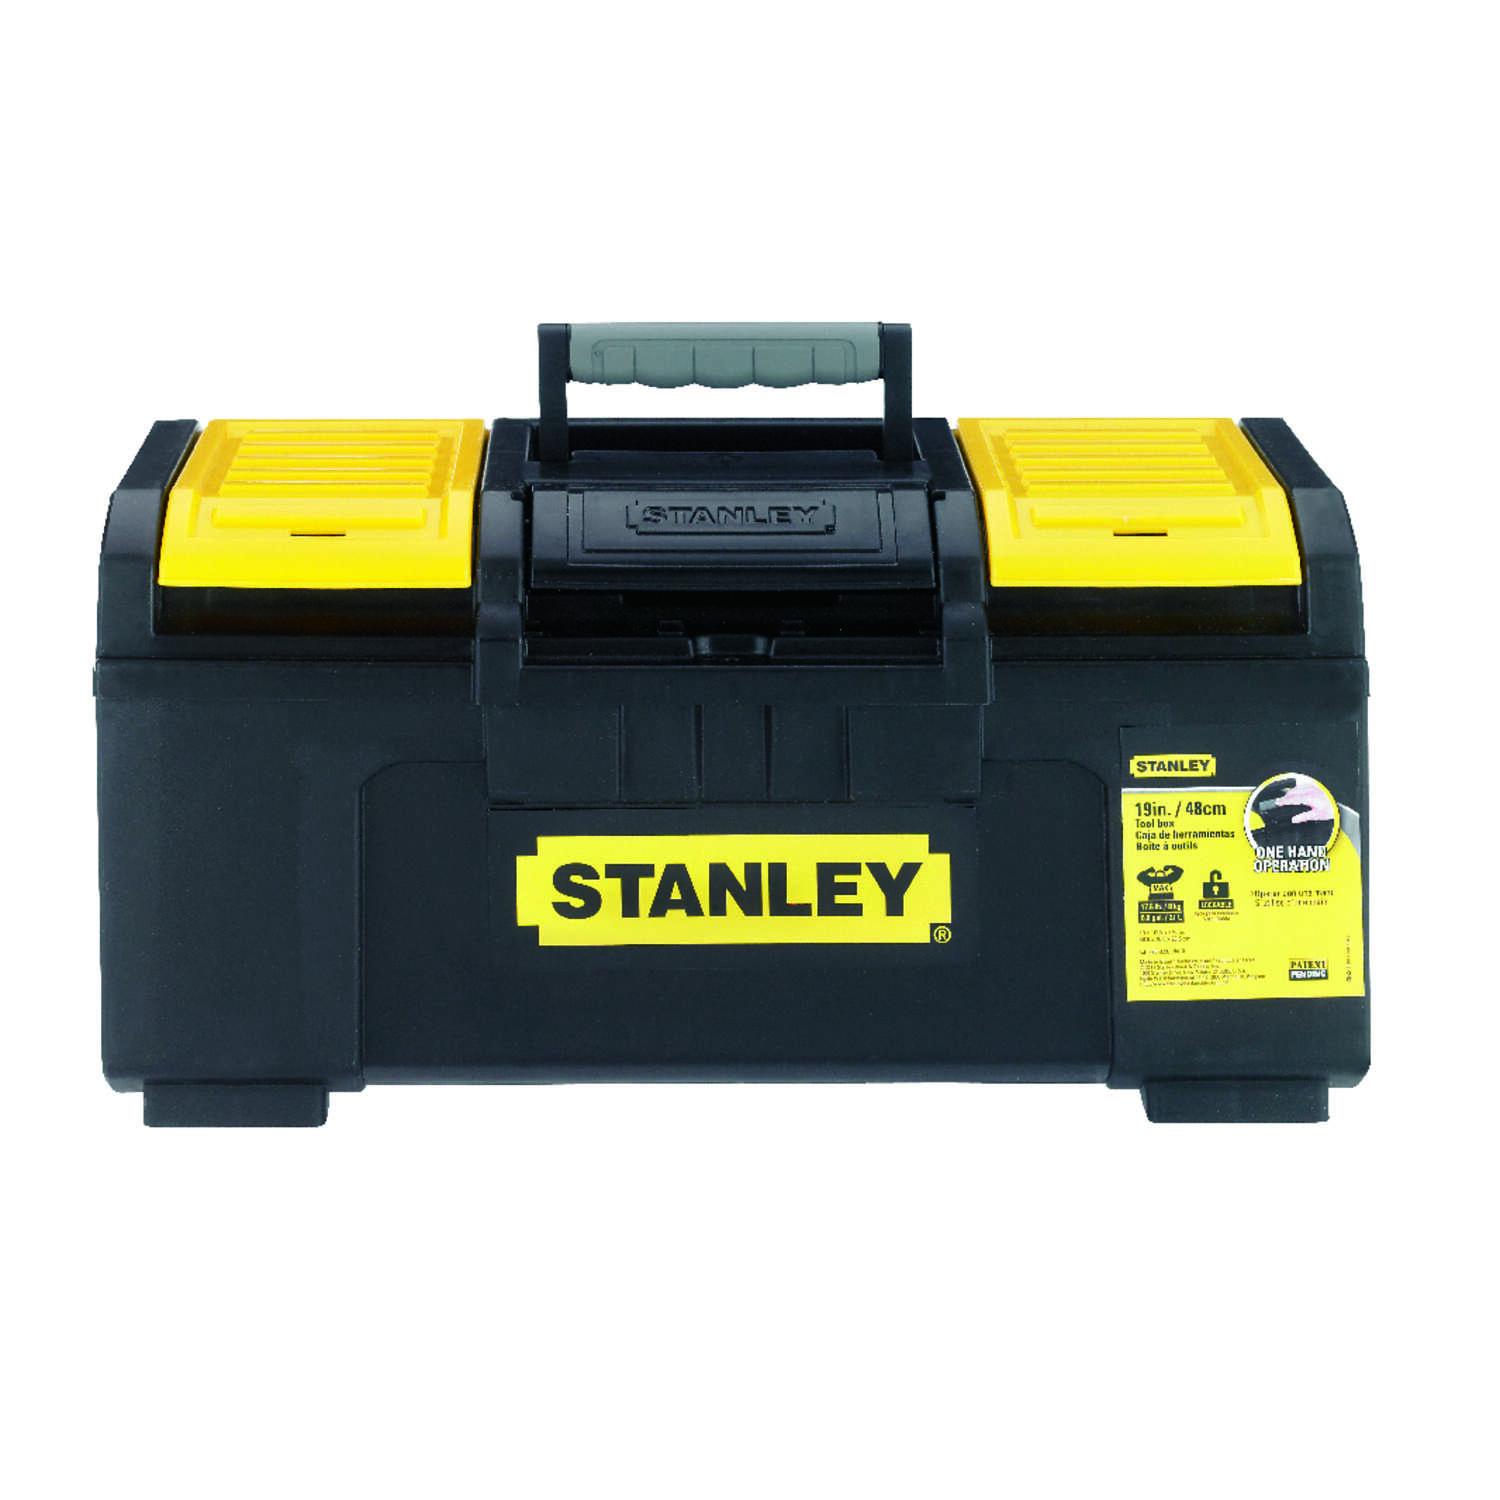 Stanley 19 in. Plastic Tool Box 10.5 in. W x 9 in. H Black/Yellow